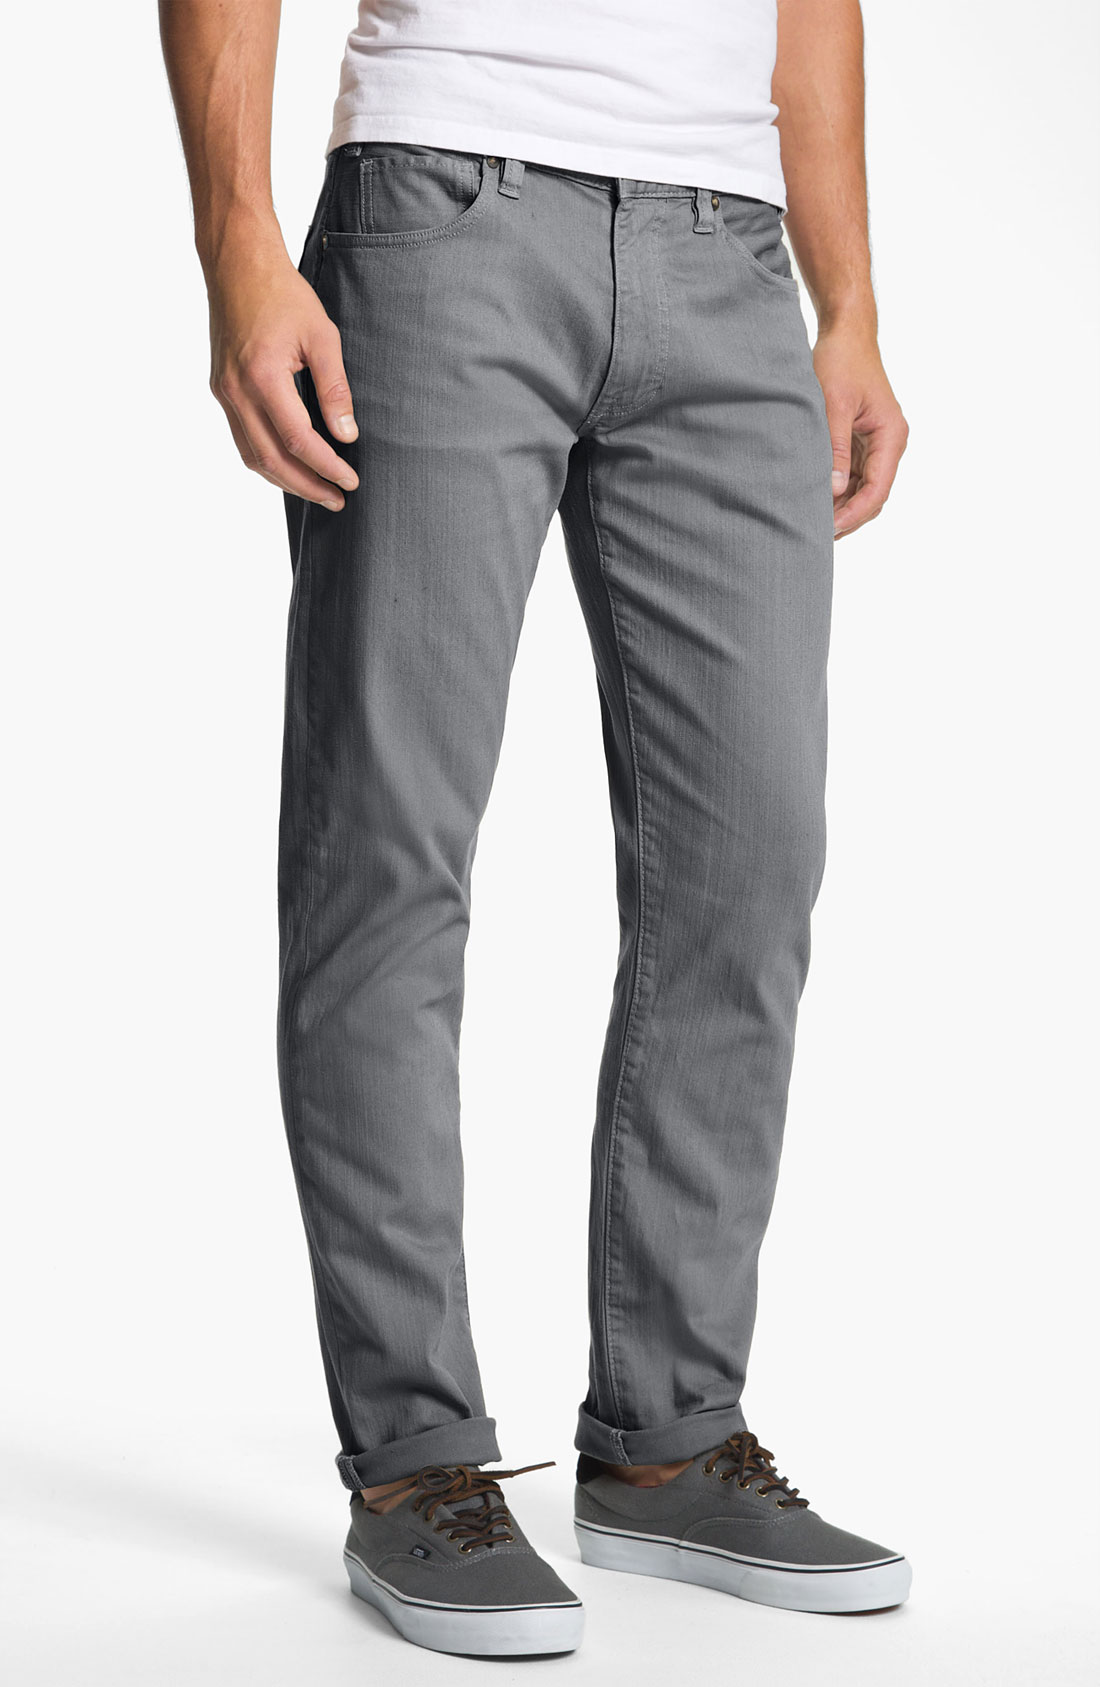 gray twill pants - Pi Pants